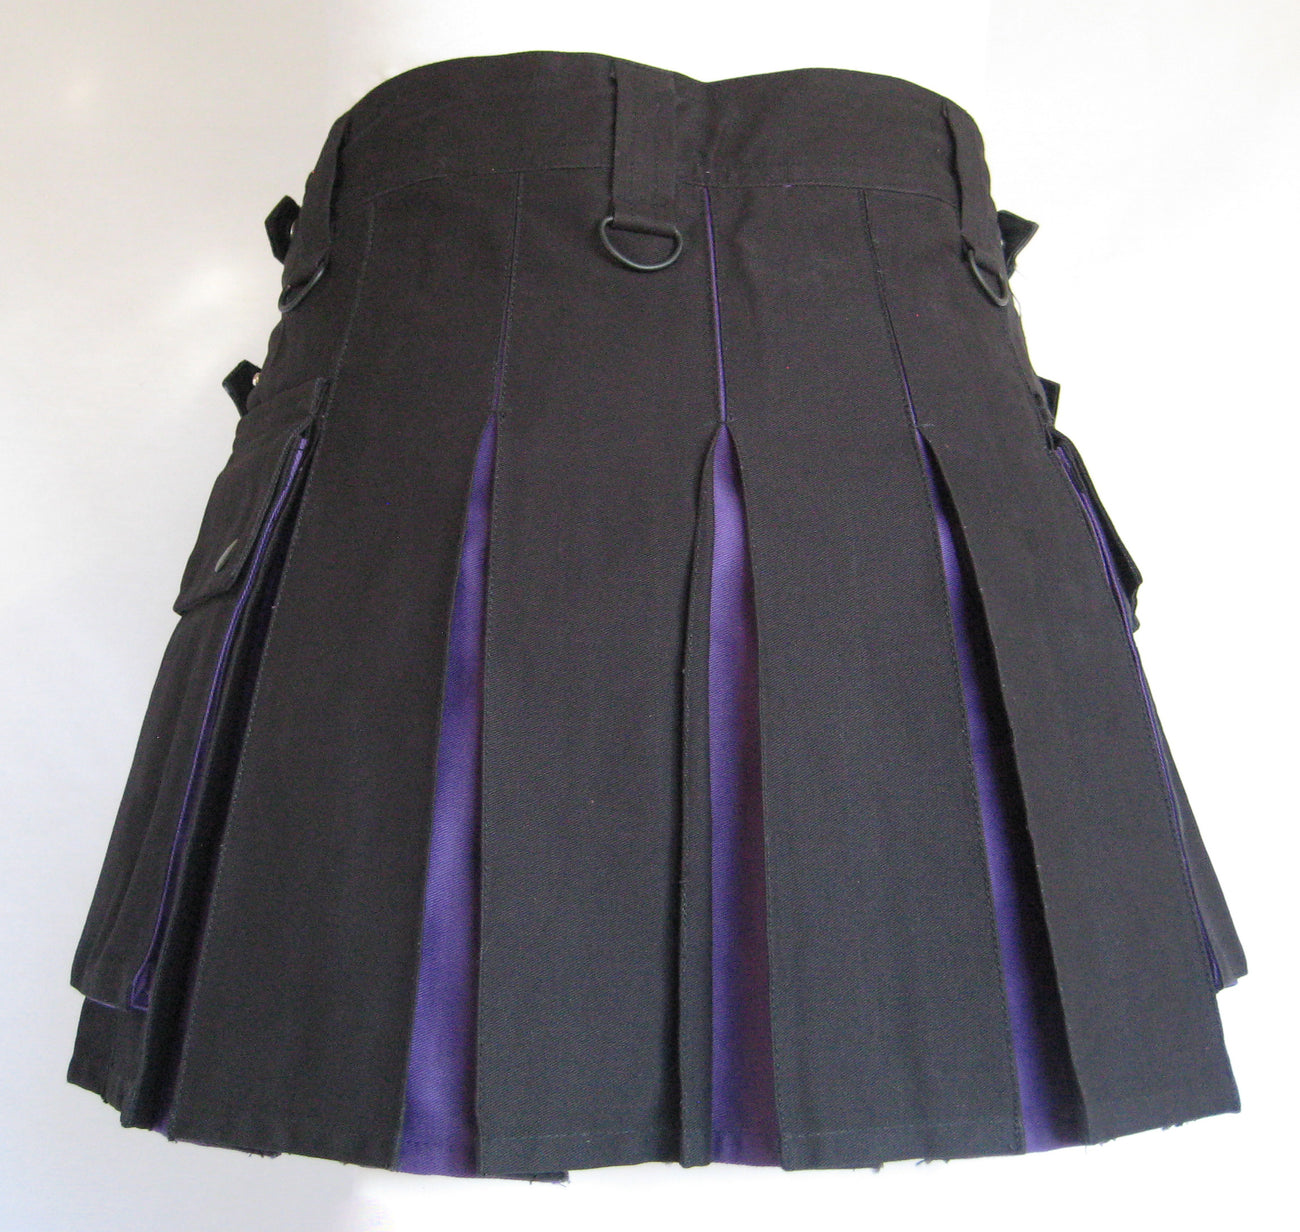 Women's Two-Tone Kilt - Black and Purple